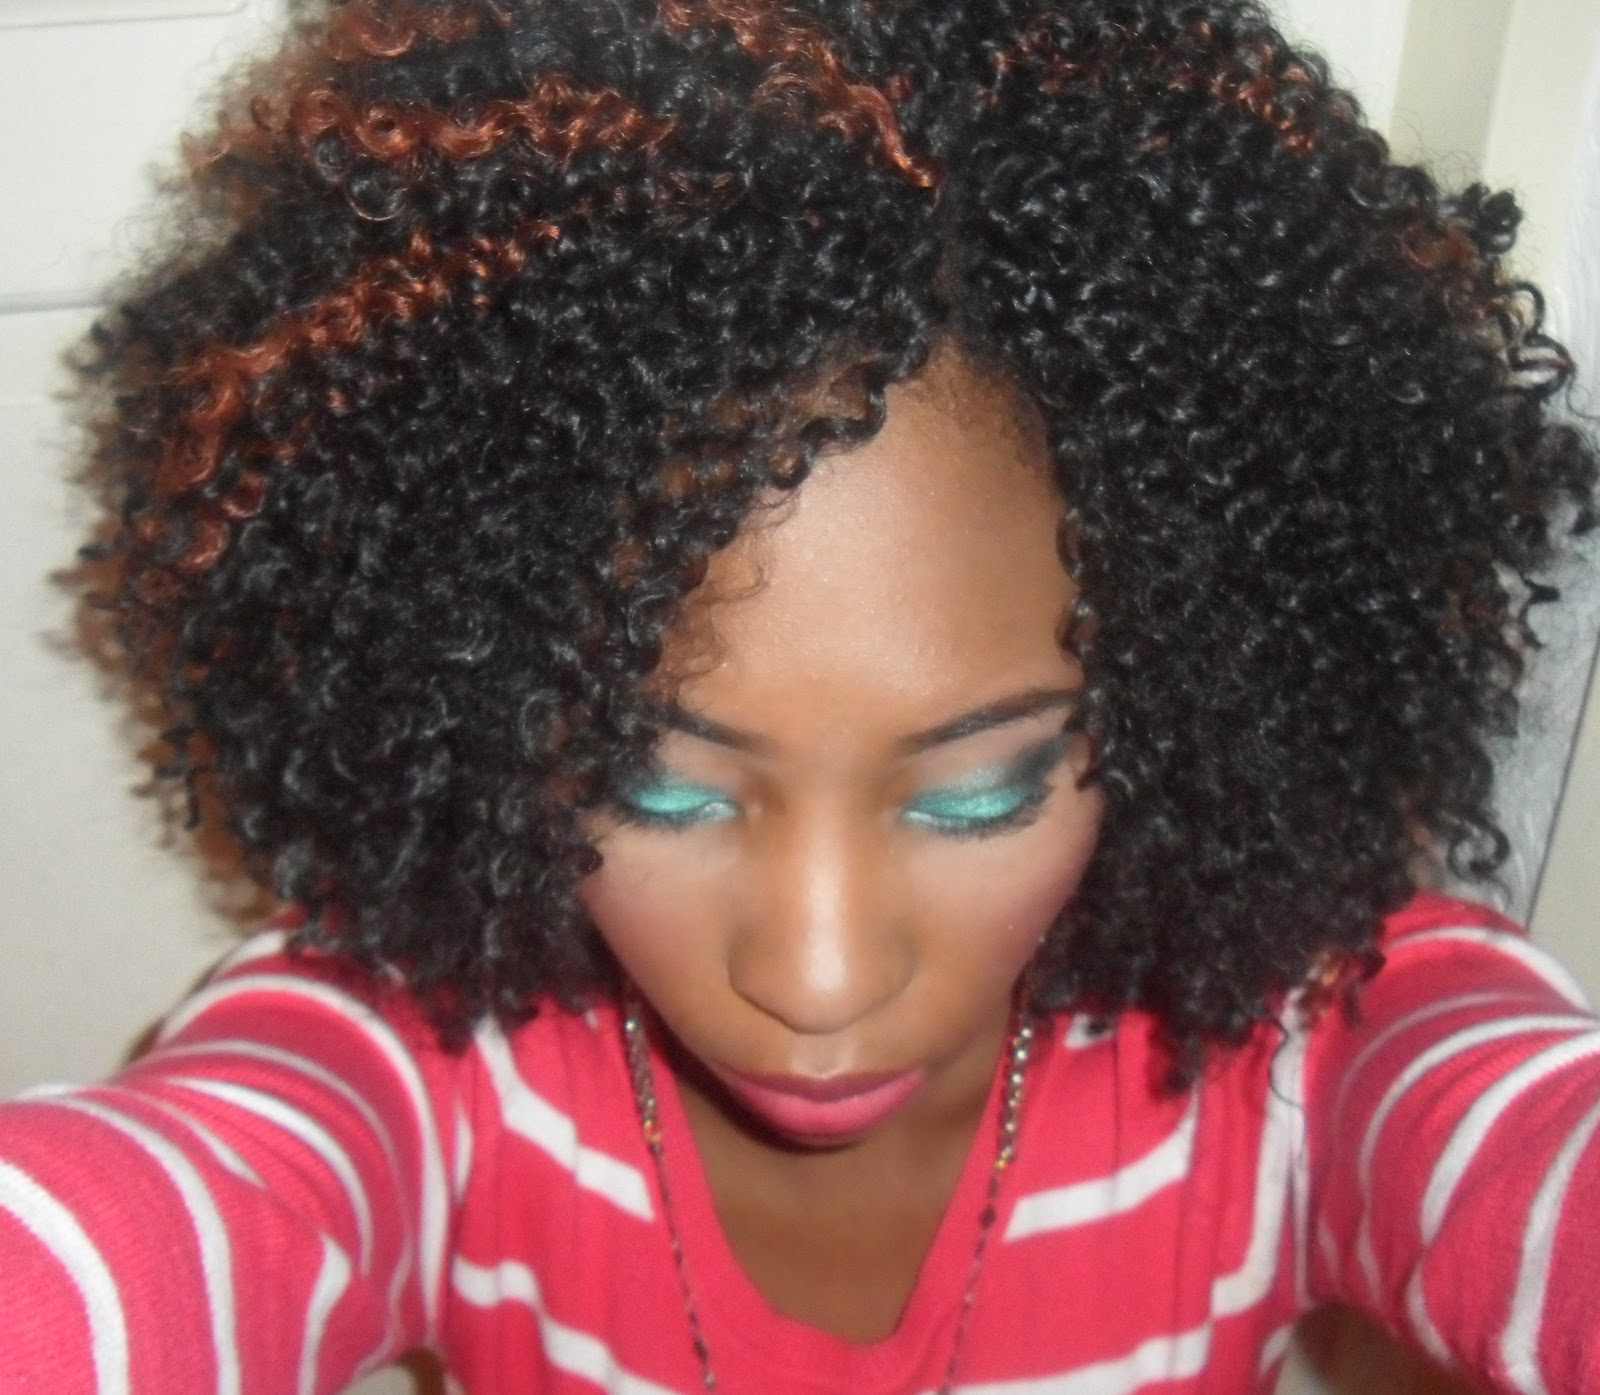 Crochet Hair Afro : Any questions, e-mail me at nubianpride@live.co.uk / tweet me @Ray ...